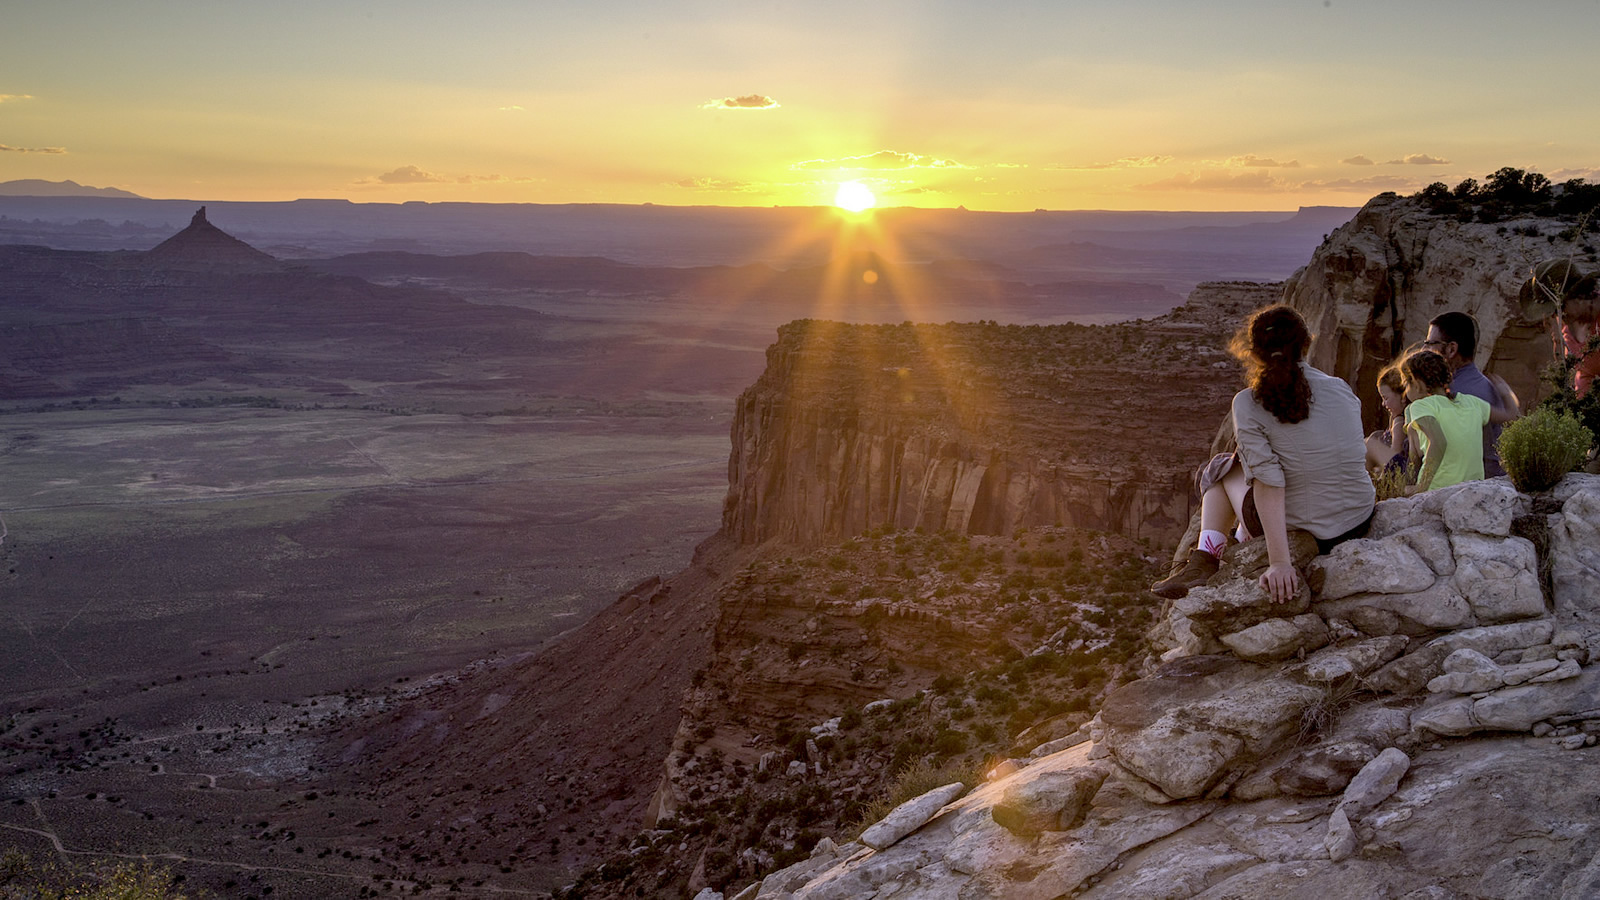 <h4>OUR PUBLIC LANDS</h4><h5>Goal: We need to defend our national monuments and other public lands from attempts to remove their protections.</h5><em>Bob Wick / BLM</em>